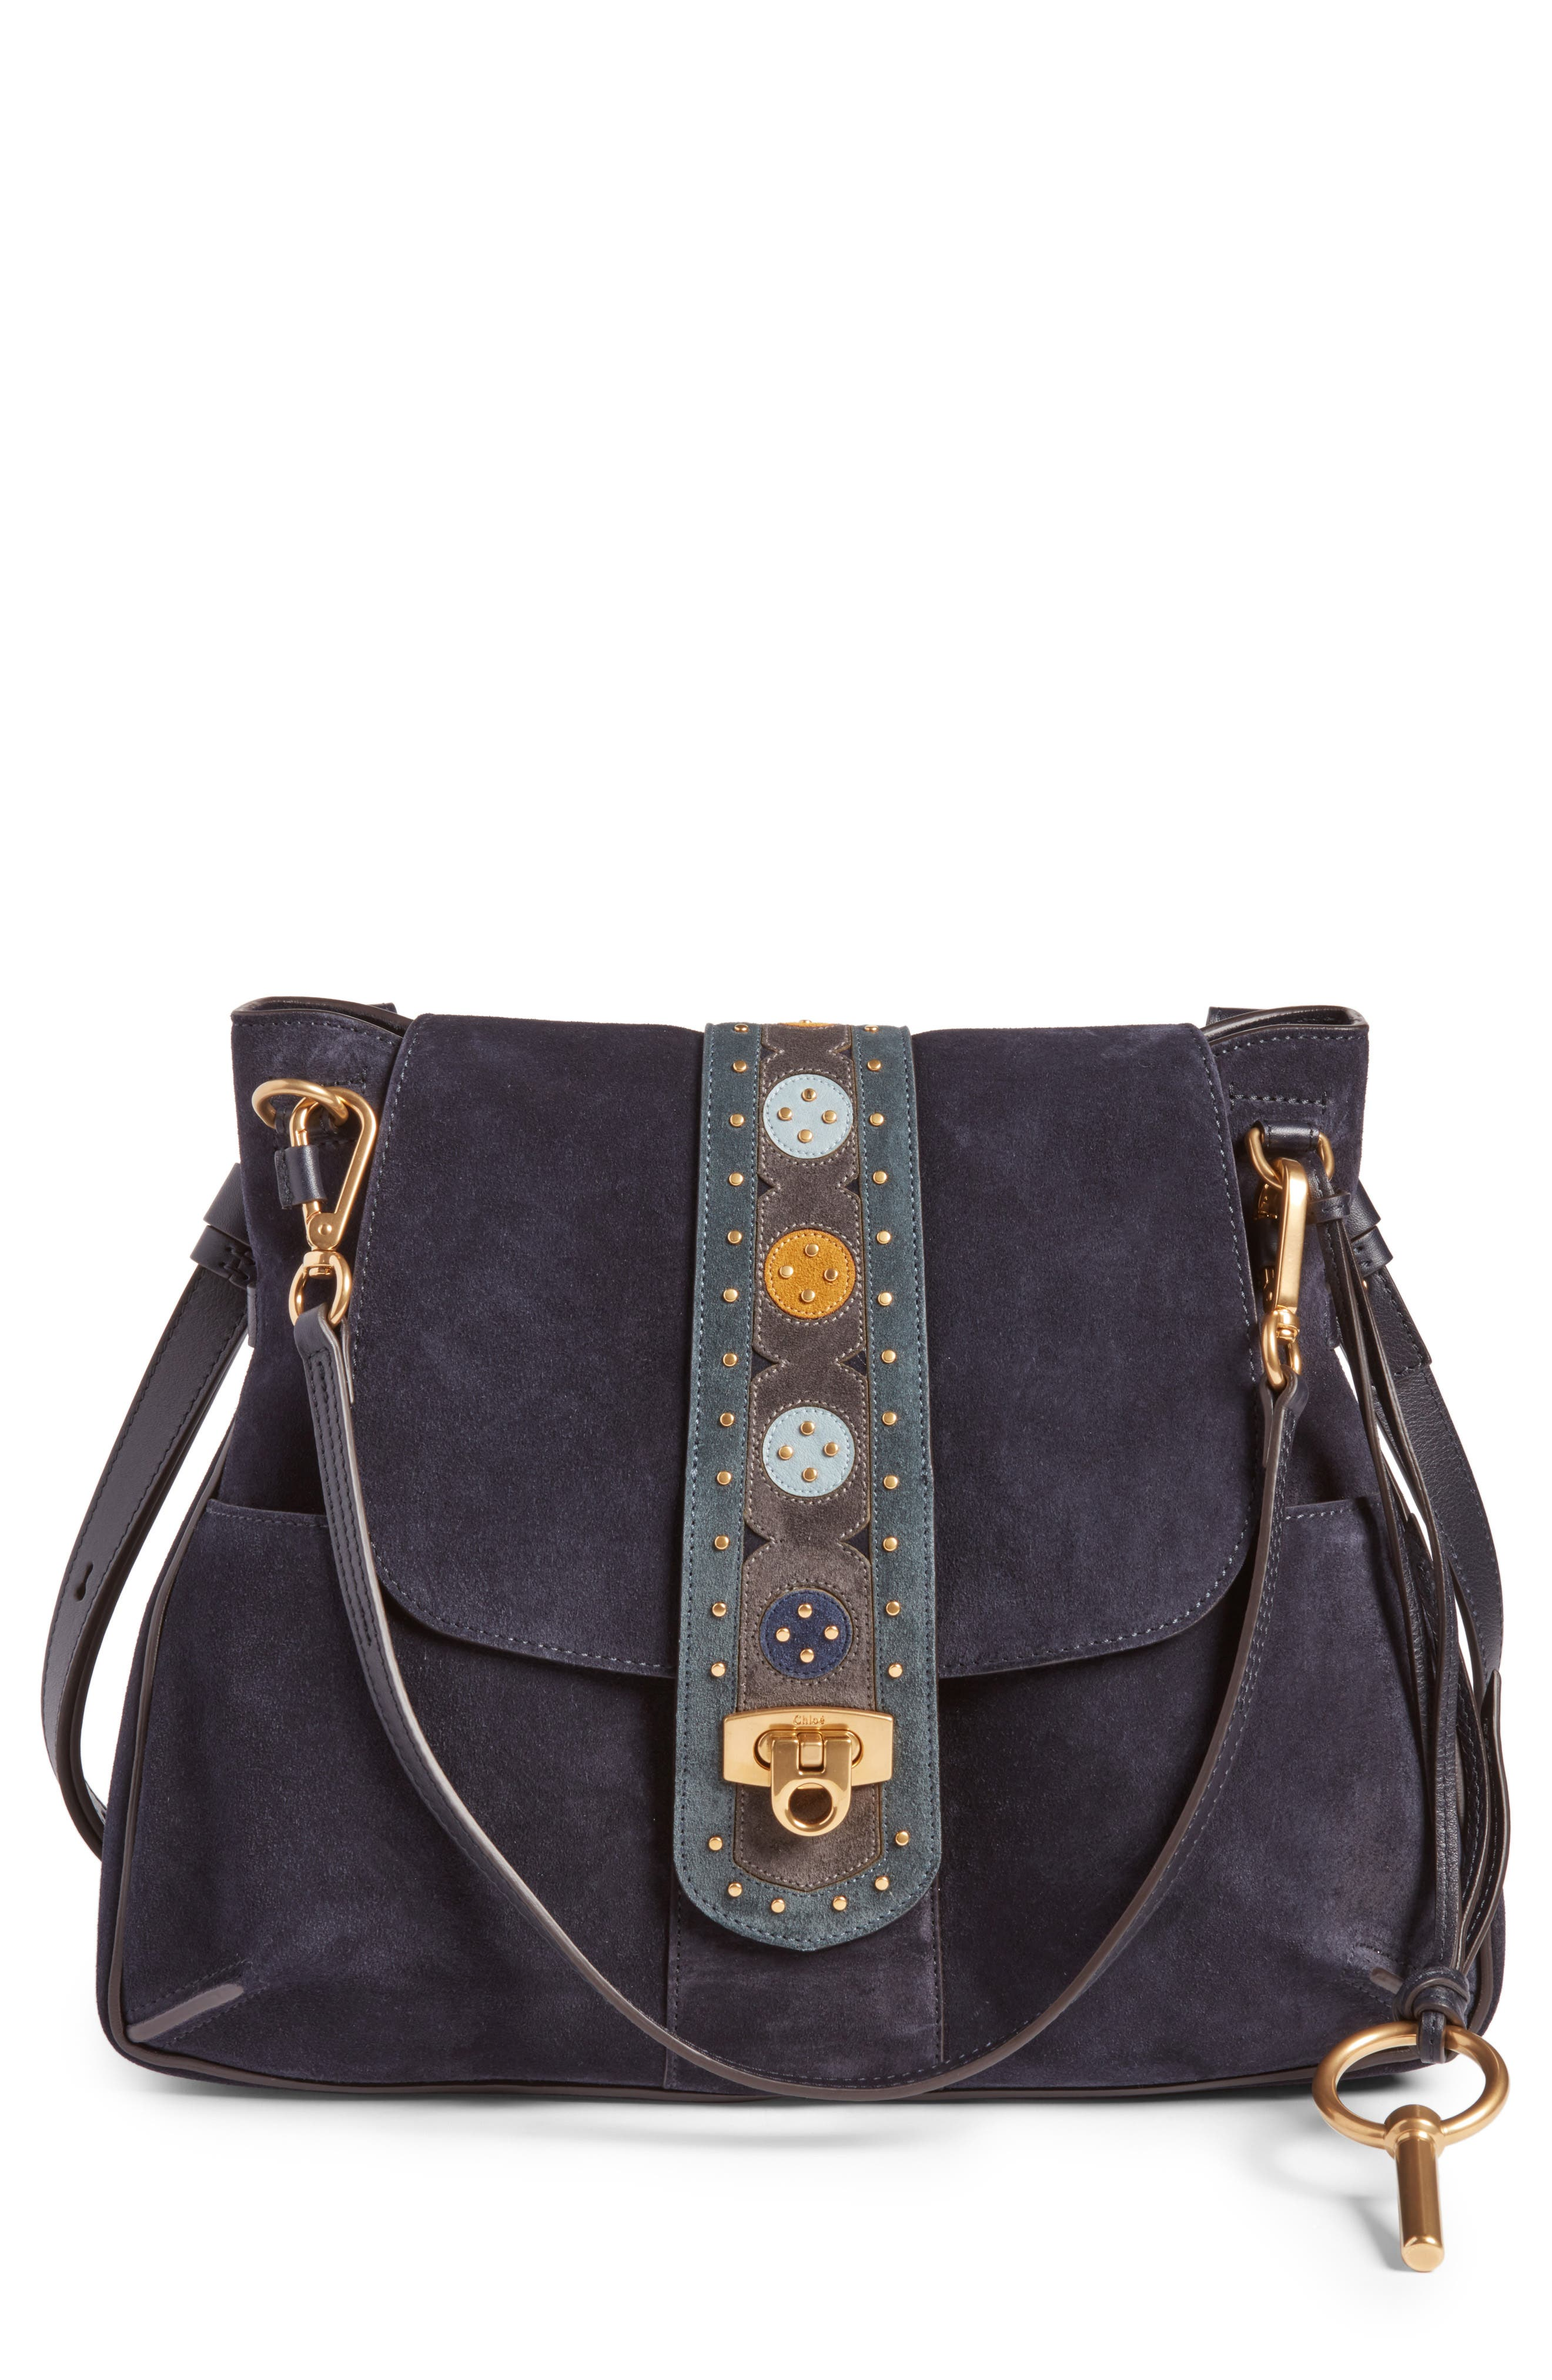 Chloé Medium Lexa Suede Shoulder Bag